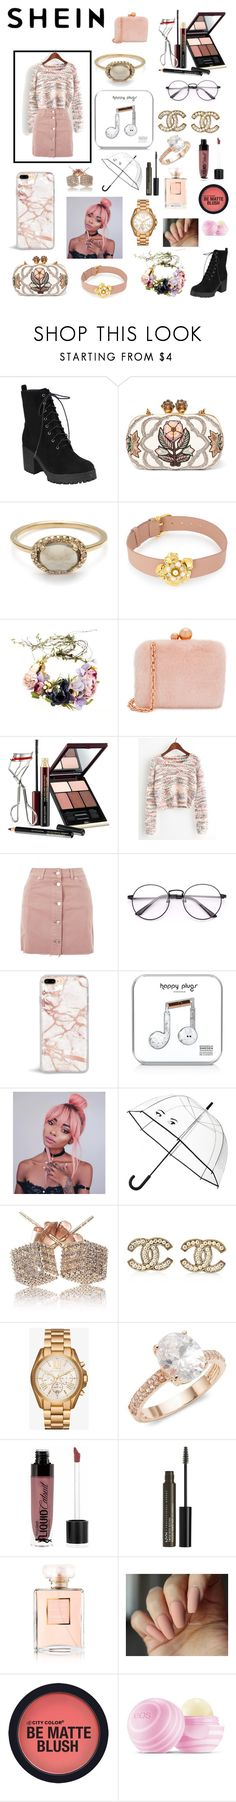 """Pink is my calming color"" by jessica-jude17 ❤ liked on Polyvore featuring Alexander McQueen, Henri Bendel, Sophia Webster, Kevyn Aucoin, Topshop, Happy Plugs, Kate Spade, Chanel, Michael Kors and Saks Fifth Avenue"